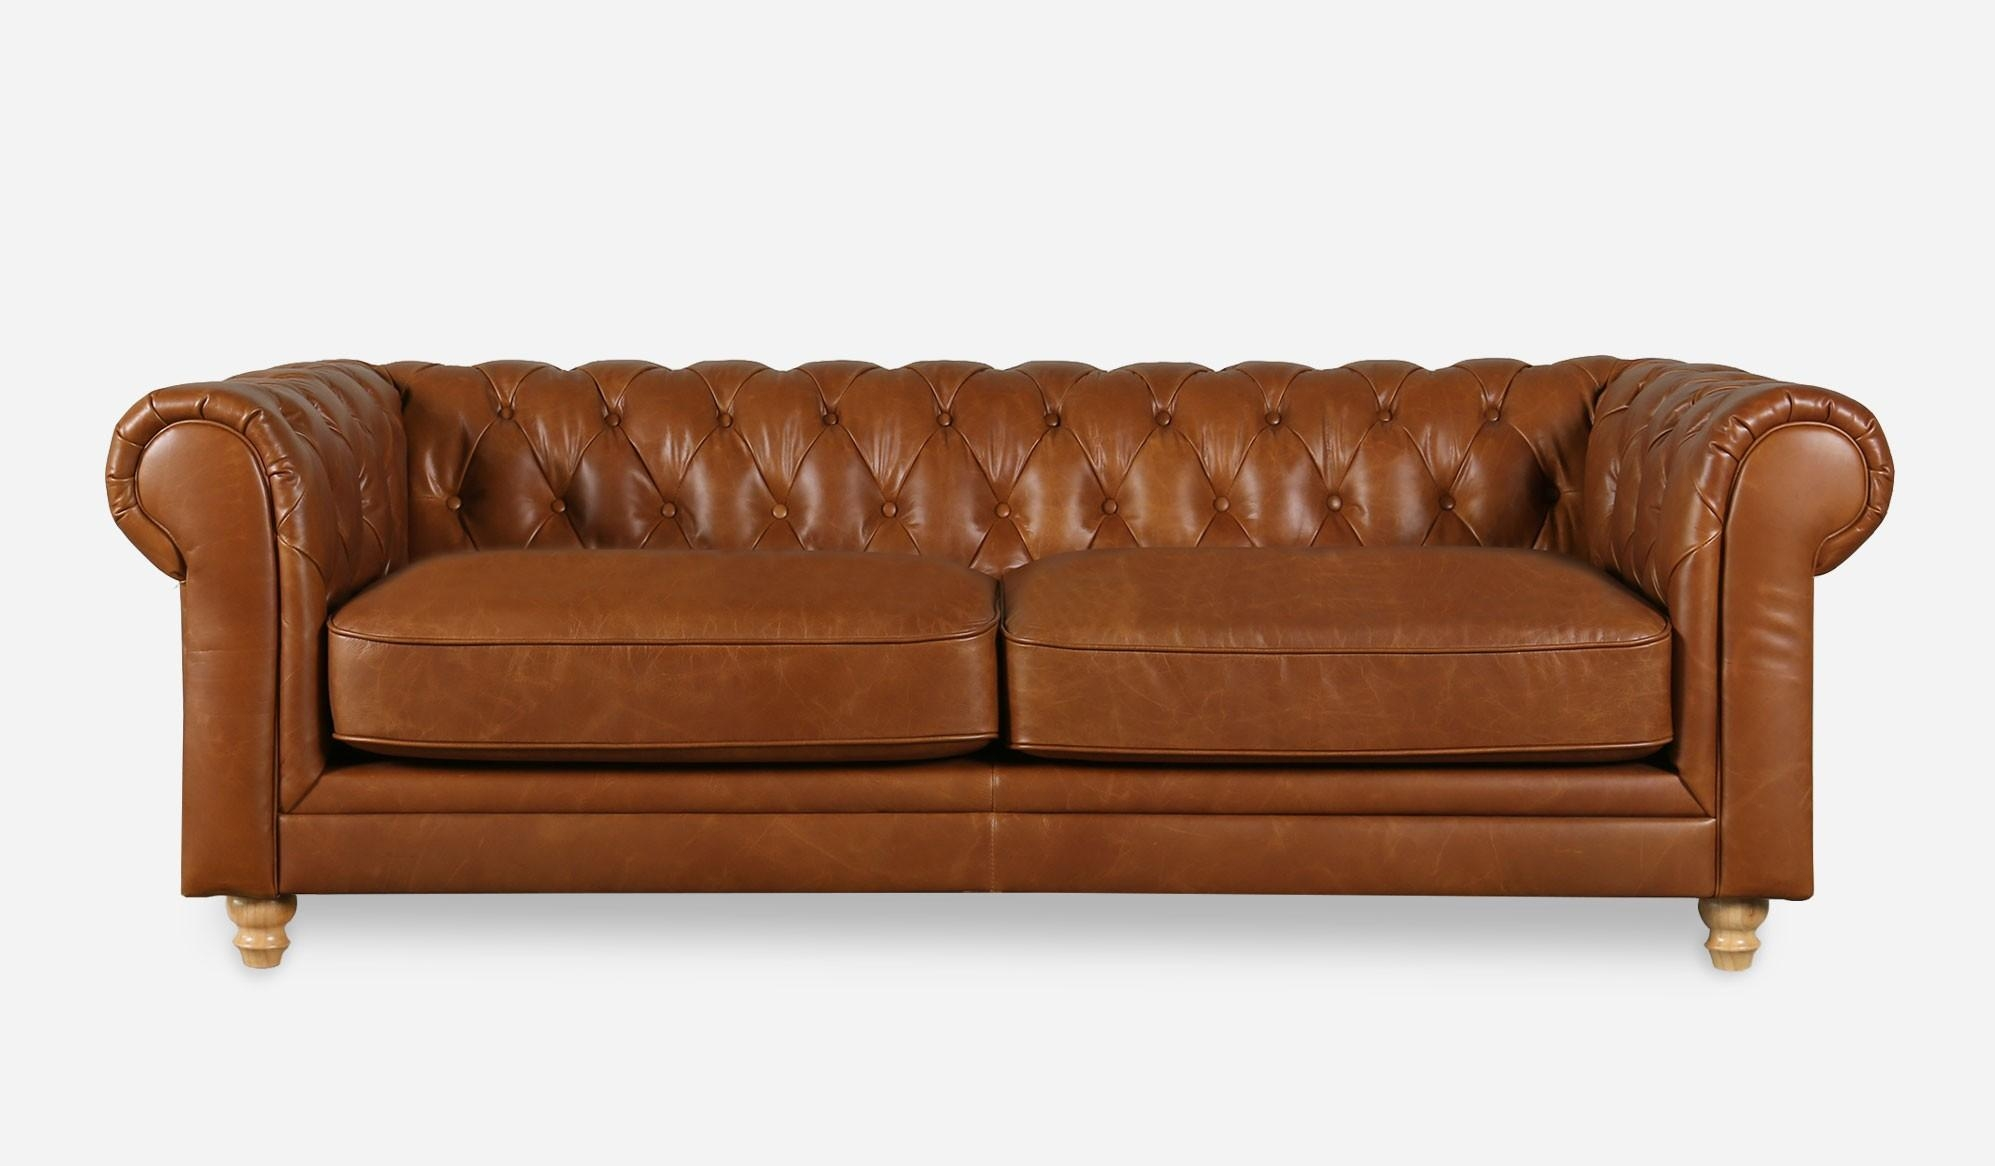 Colorful Sofas Camel Colored Sofas And Decorating Ideas Elitflat